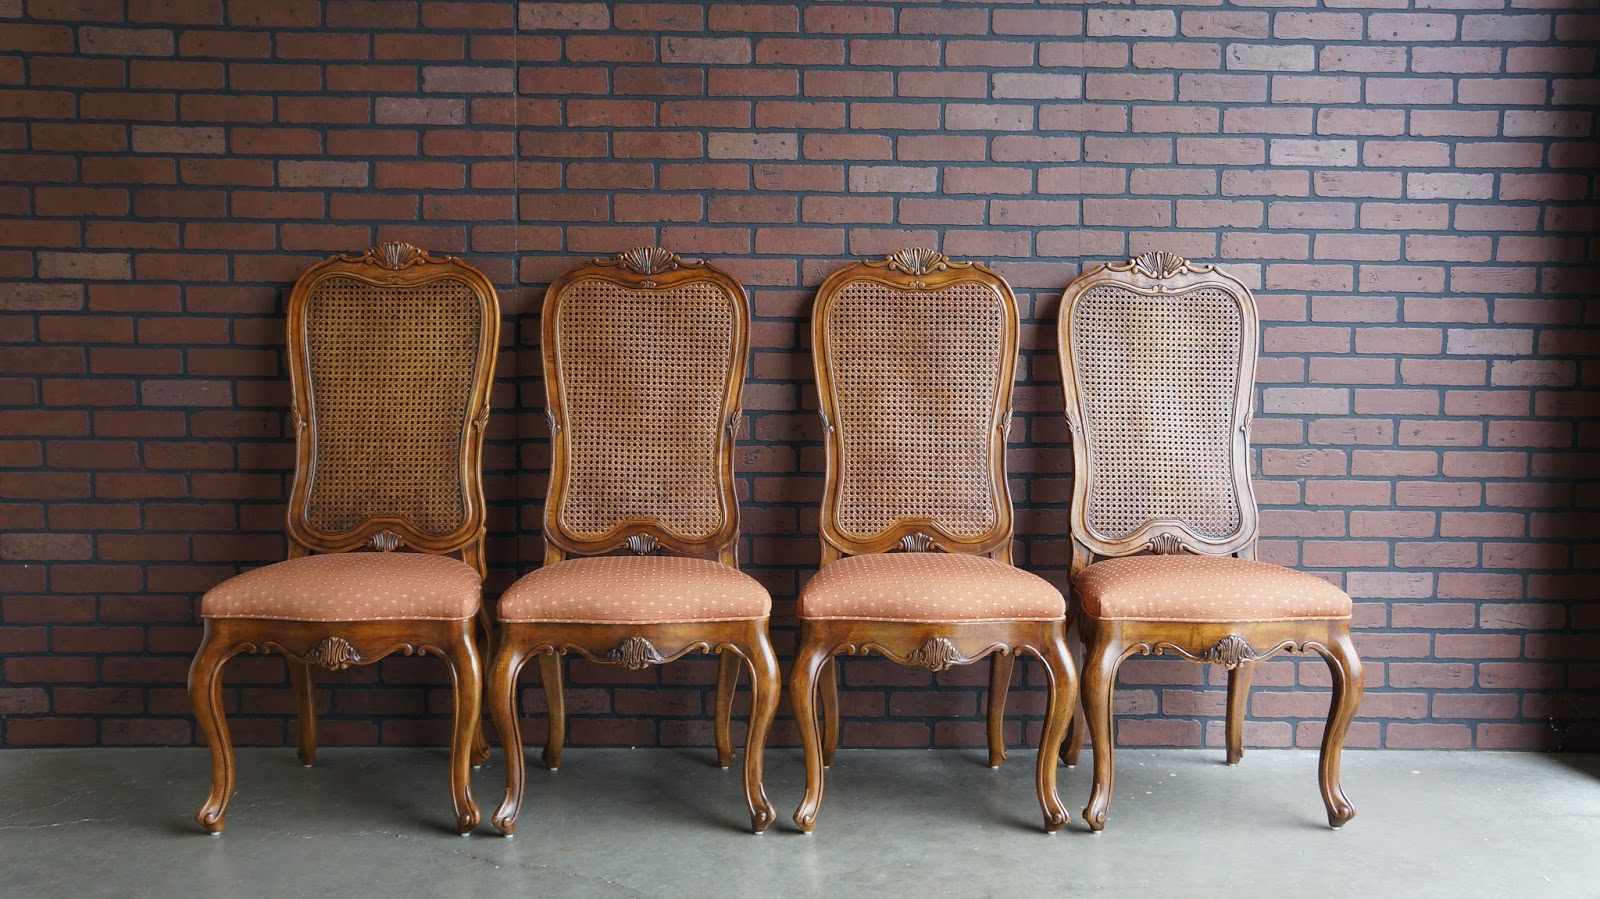 Cane Back Chairs Antique Stickley Brothers Rocking Chair European Flair Furniture: Shop Store